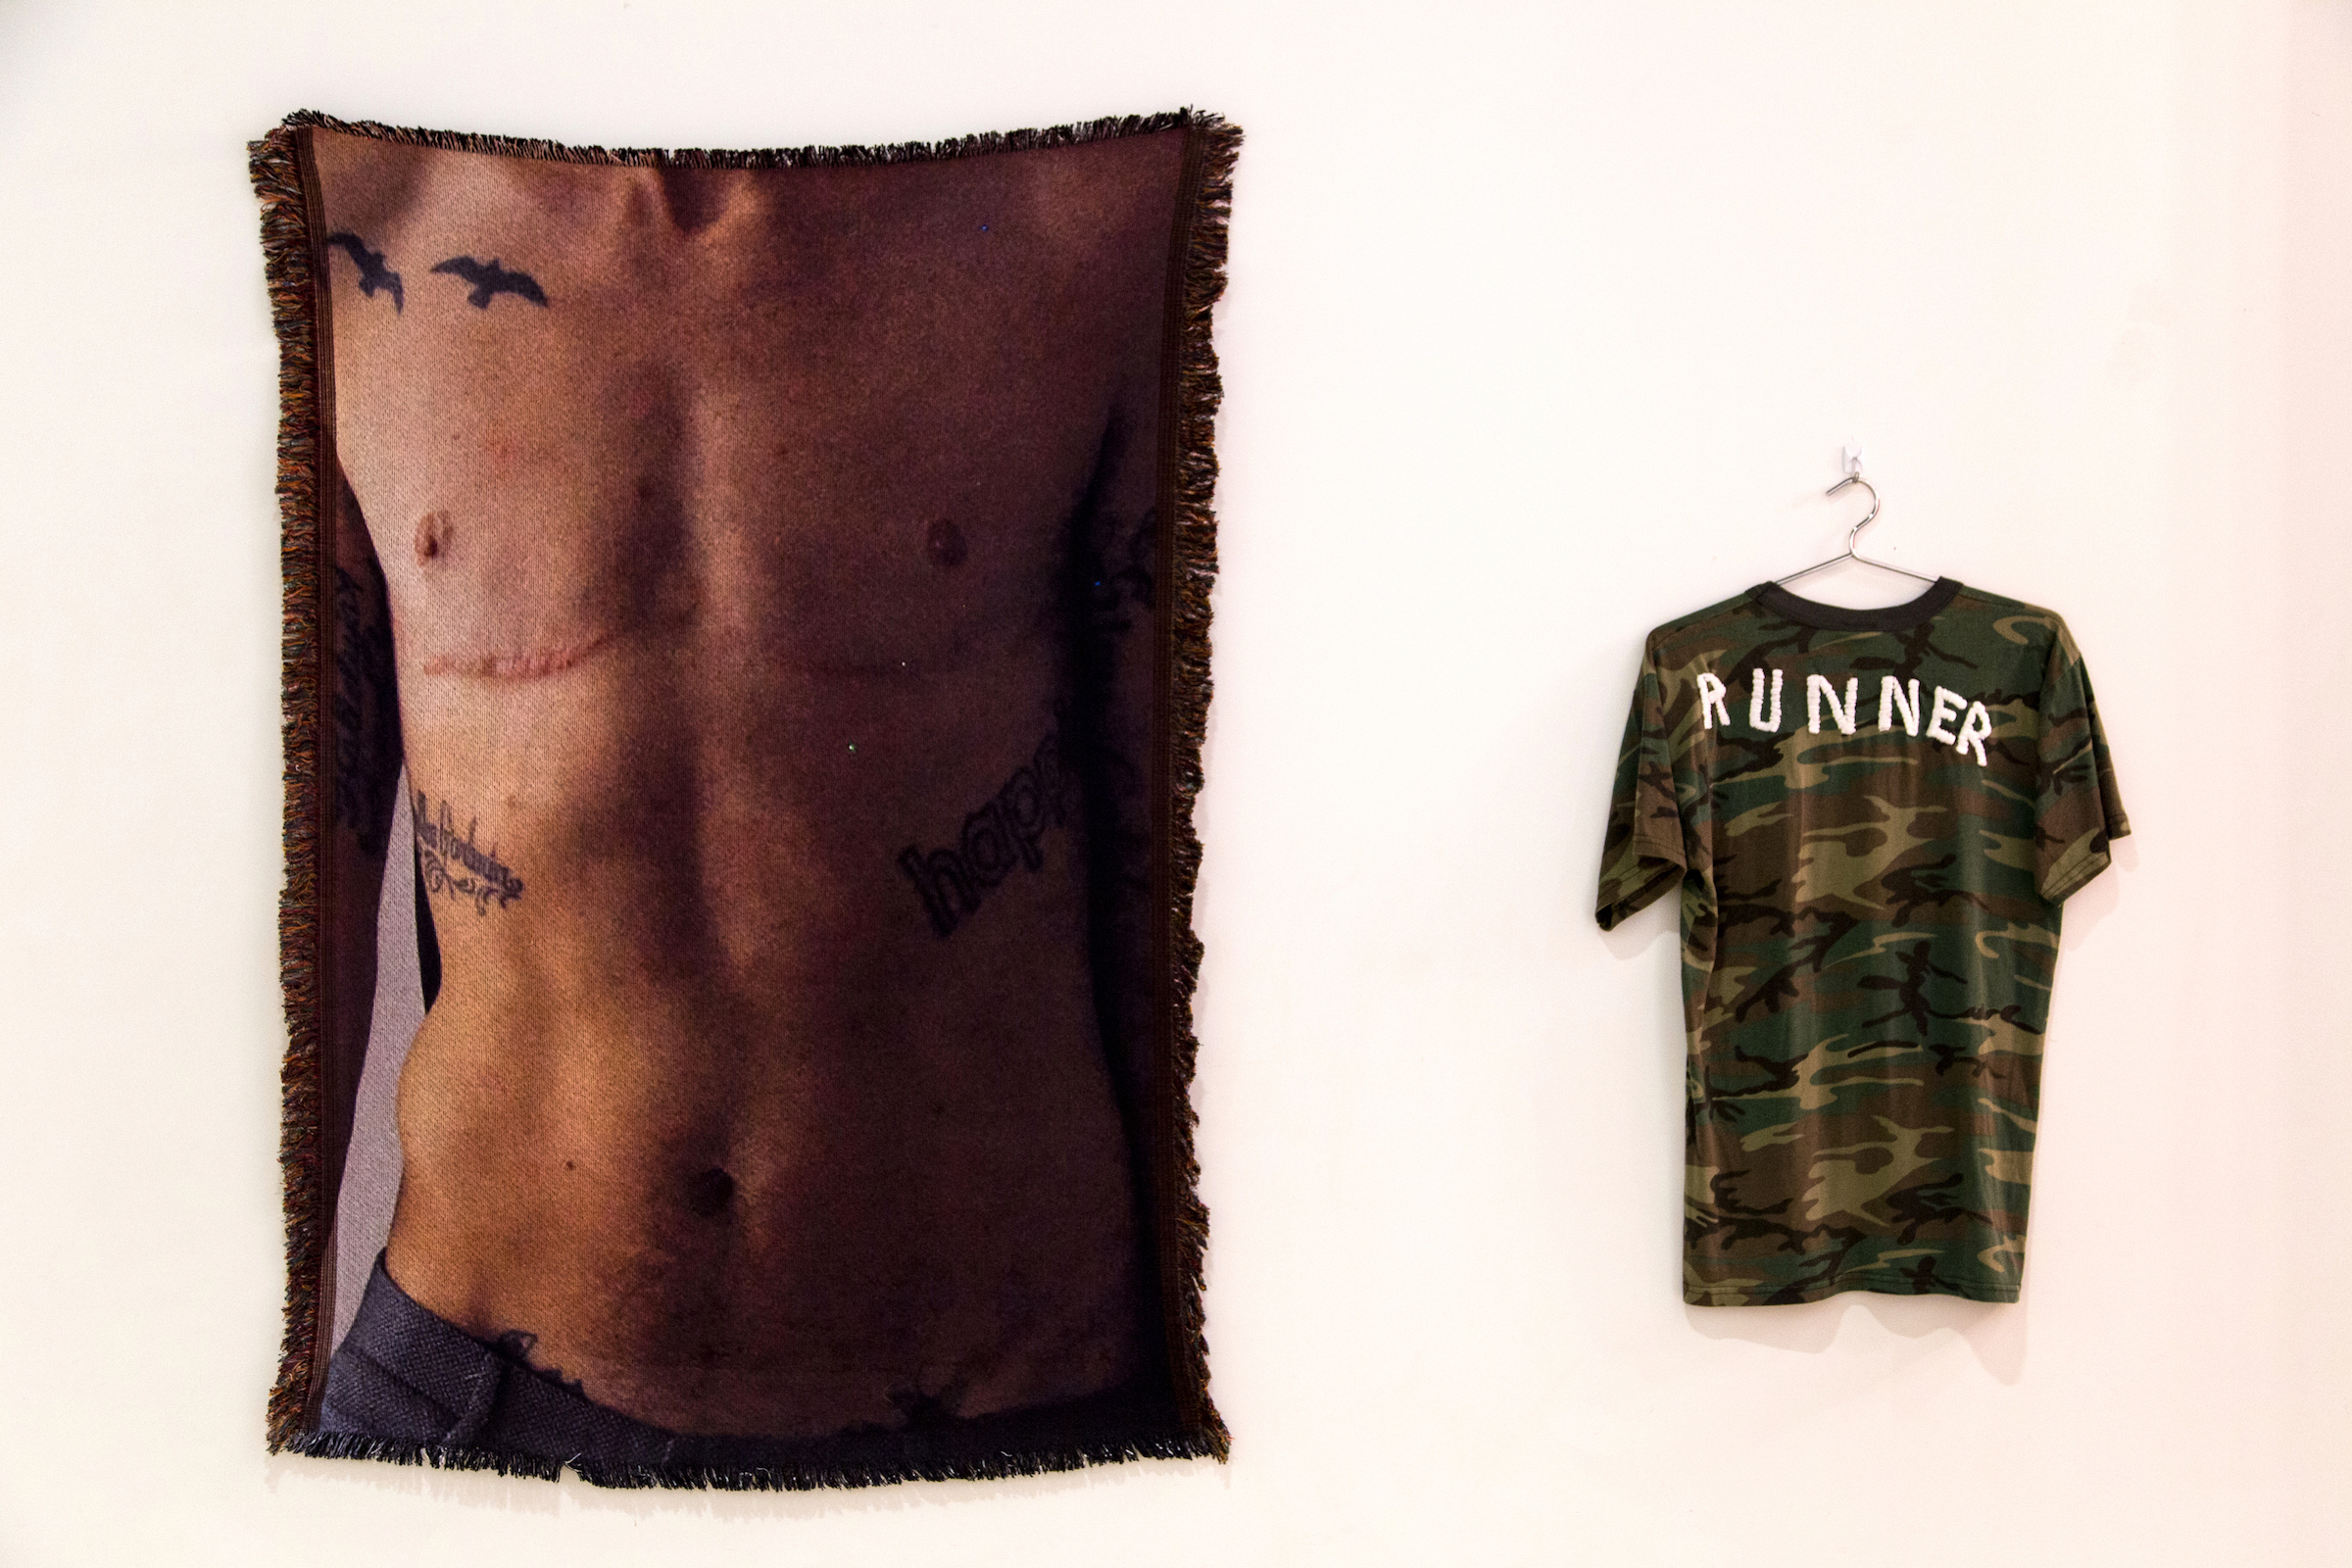 "Sawyer  with  Runner , 2017, photo-sublimated woven blanket, 54"" x 38"", embroidered tee, 24"" x 16"""